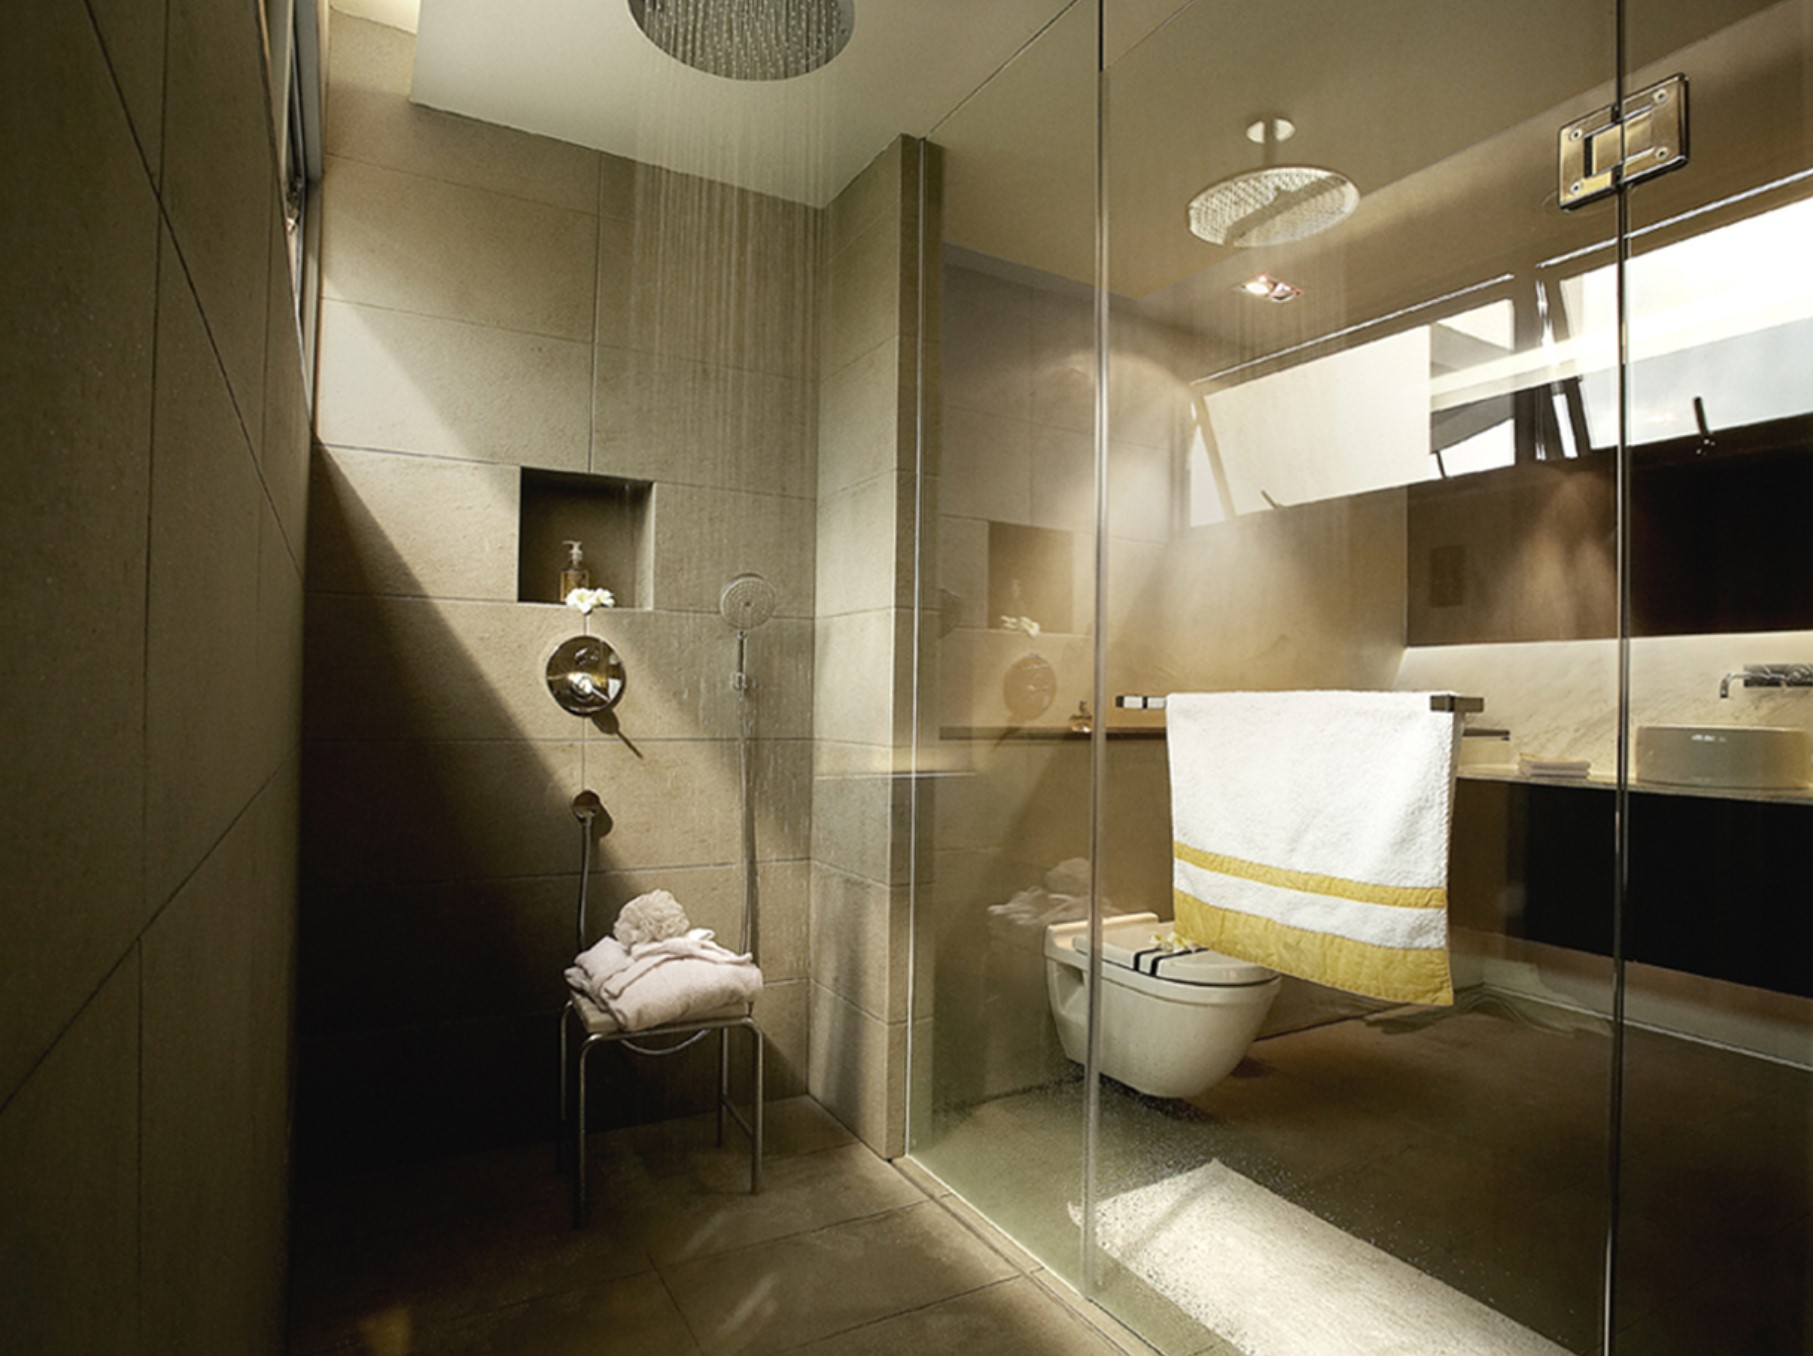 Design Toilette Bathroom And Toilet Designs Bespoke Luxury Bathrooms